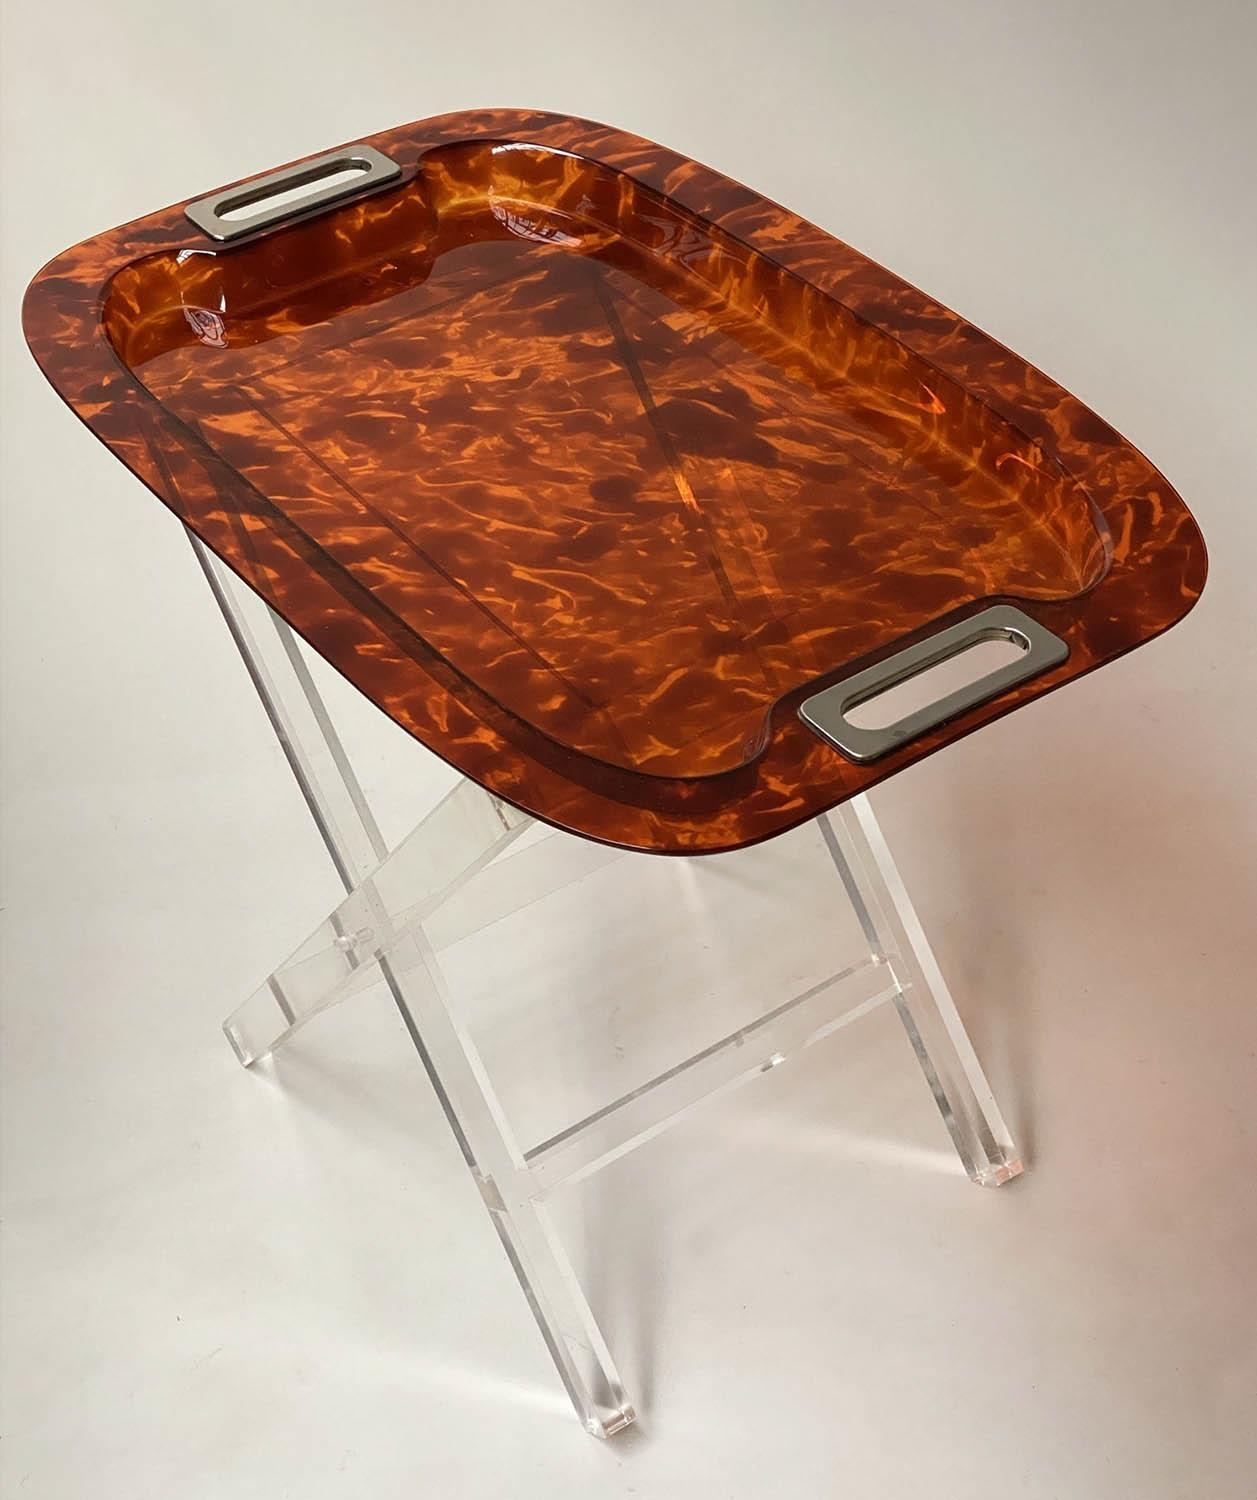 TRAY ON STAND, rectangular faux tortoiseshell with silvered metal handles on folding lucite stand, - Image 3 of 8